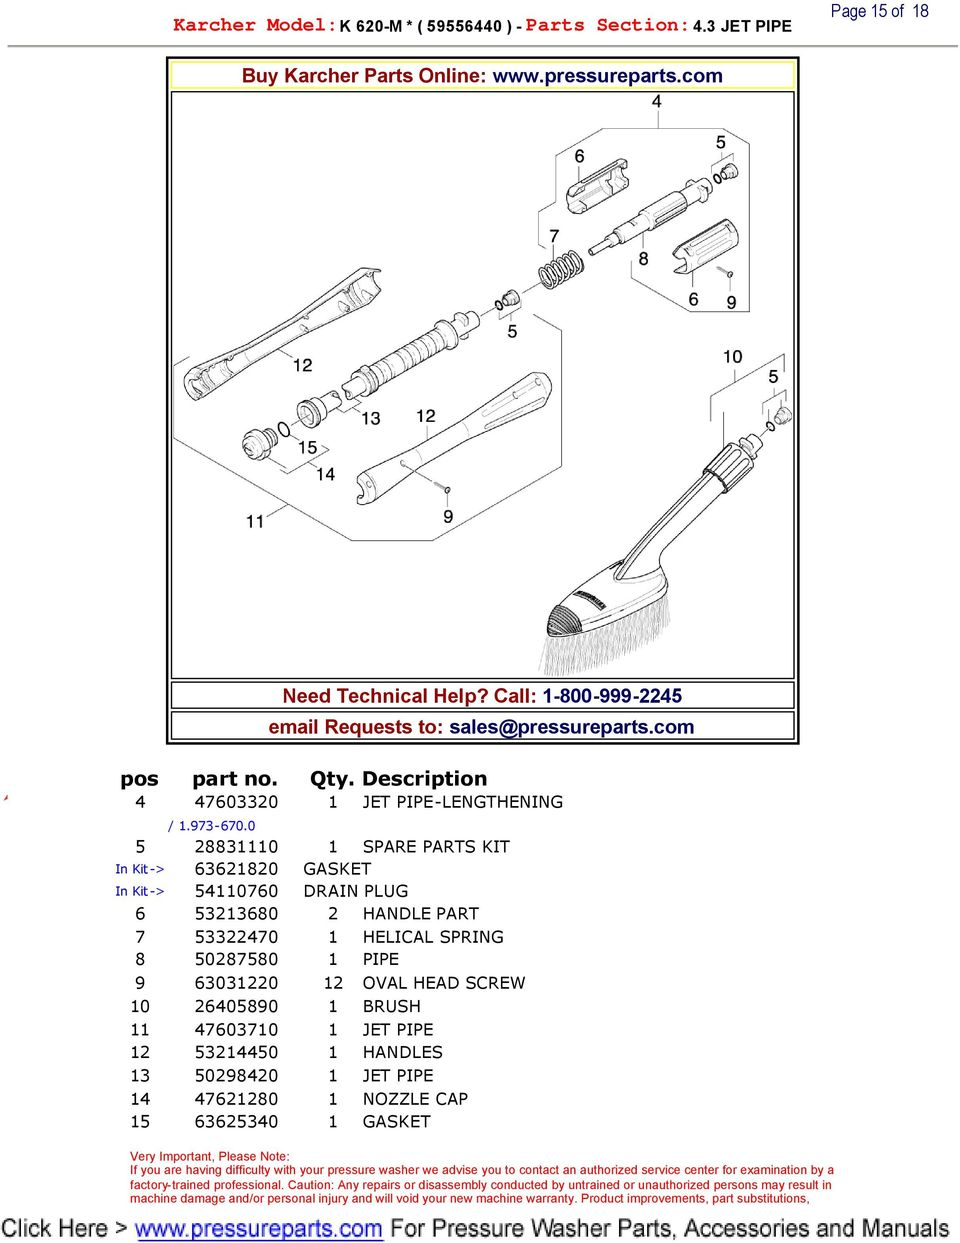 Buy Karcher Parts Online Need Technical Help Call Requests To Pdf Drainage Pump Sp 3 Dirt 0 5 28831110 1 Spare Kit In 63621820 Gasket